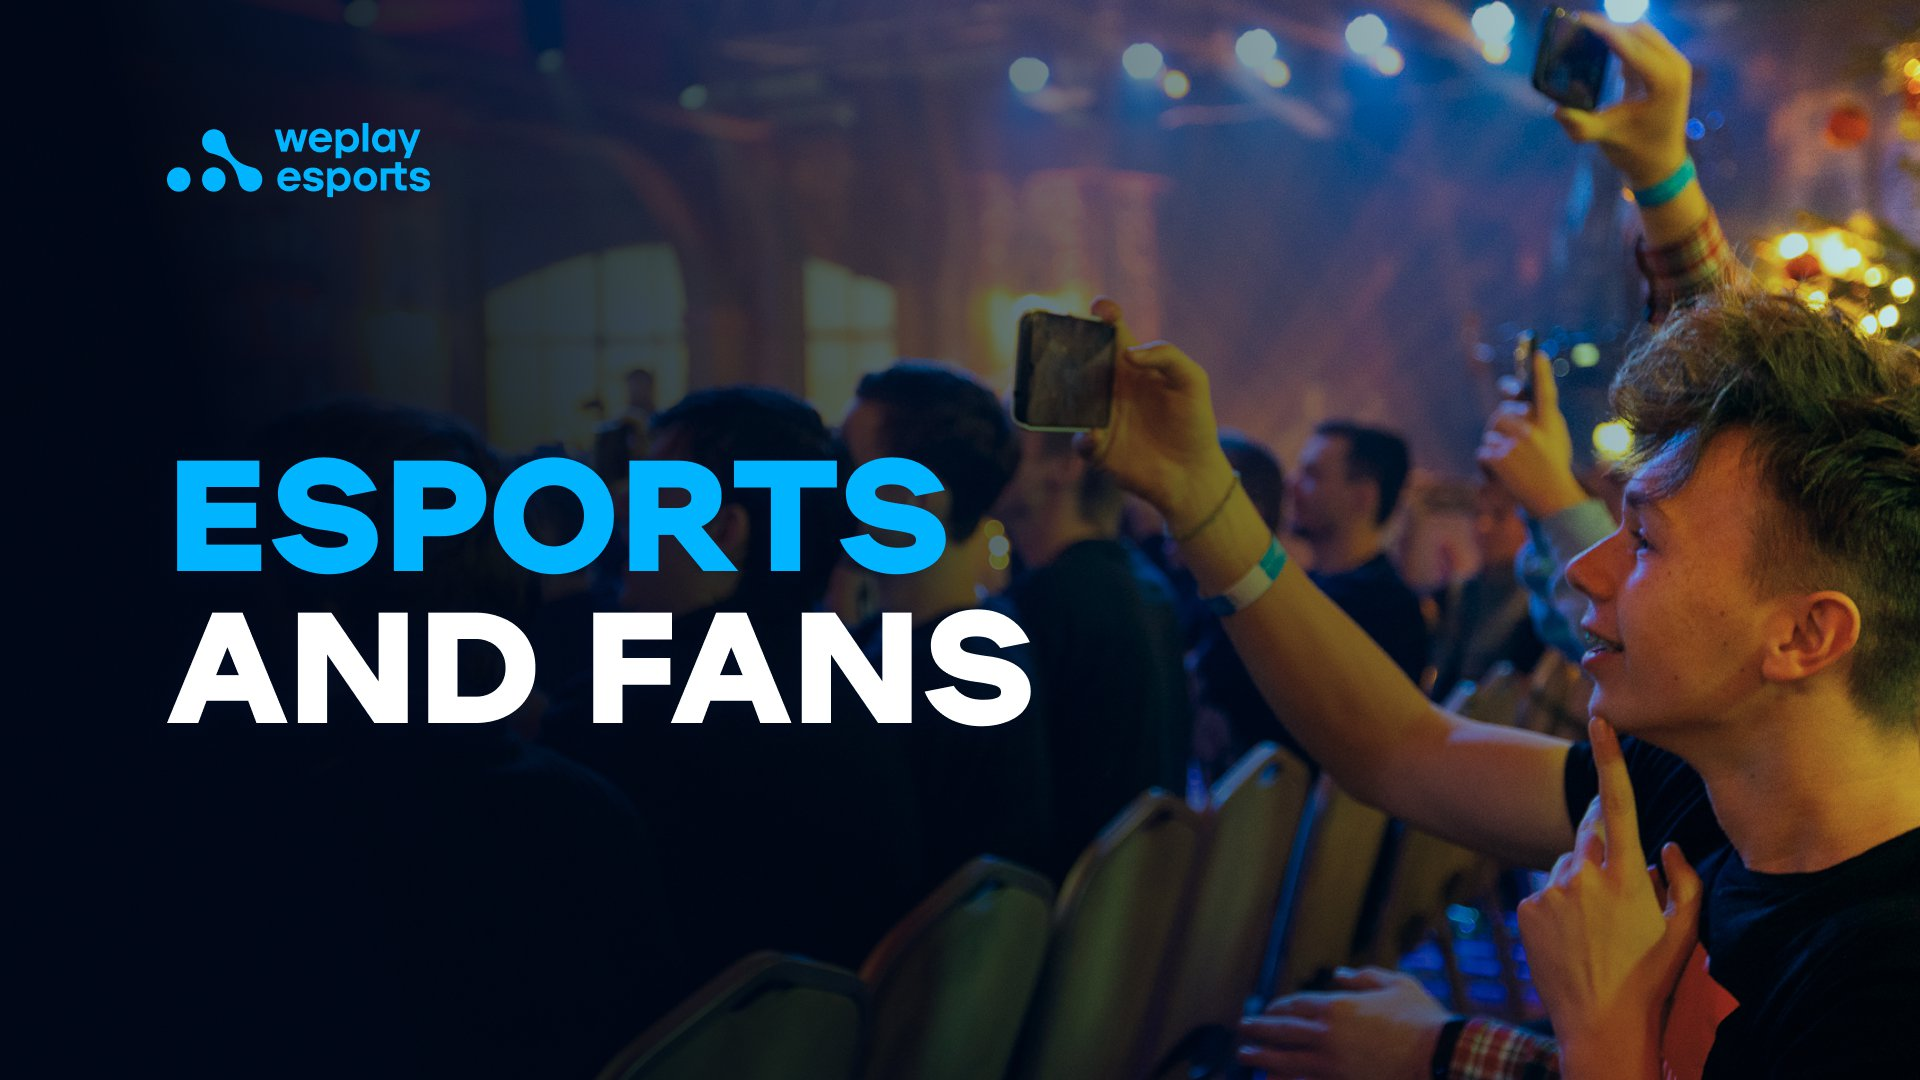 Esports and Fans